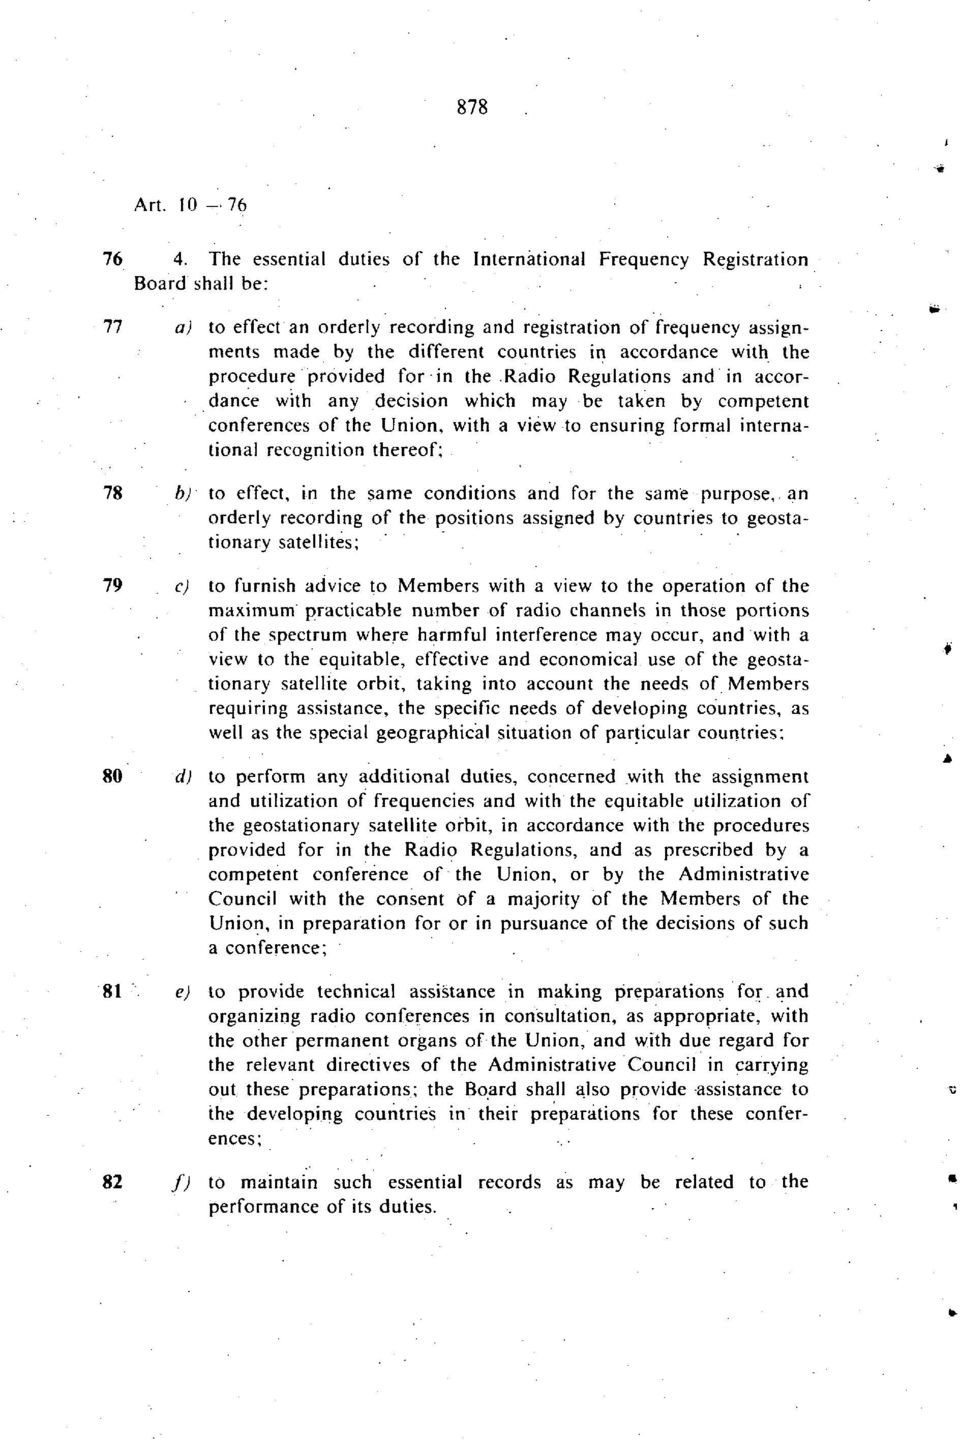 recognition thereof; to effect, in the same conditions and for the same purpose, an orderly recording of the positions assigned by countries to geostationary satellites; to furnish advice to Members